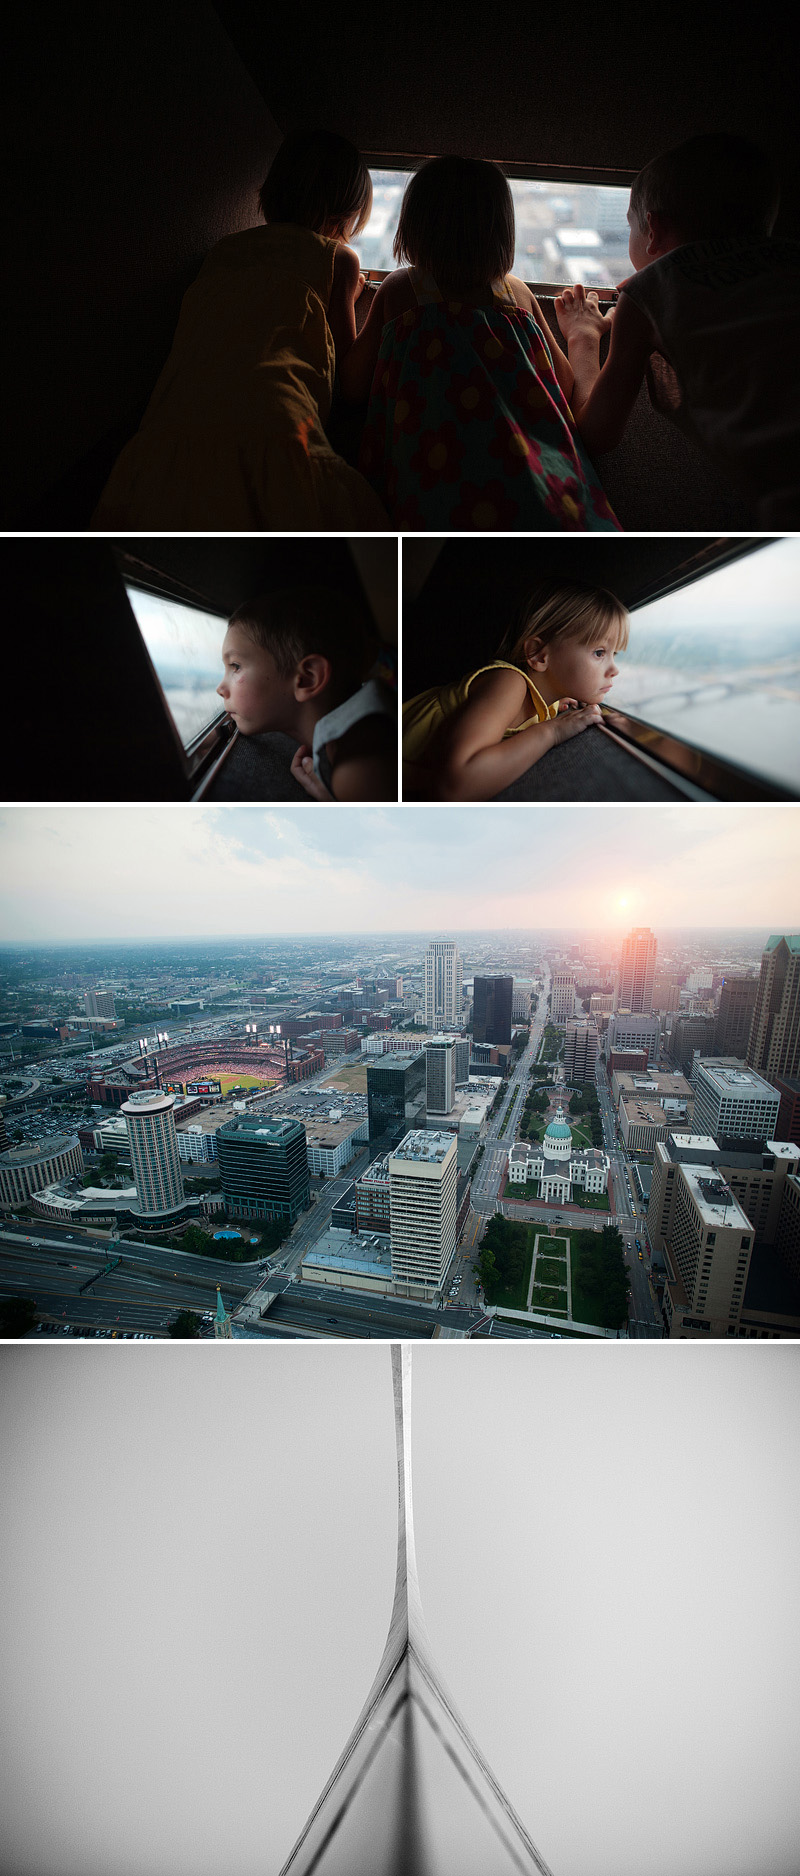 Kids looking out at the missouri river and cardinals game from the top of the Arch.